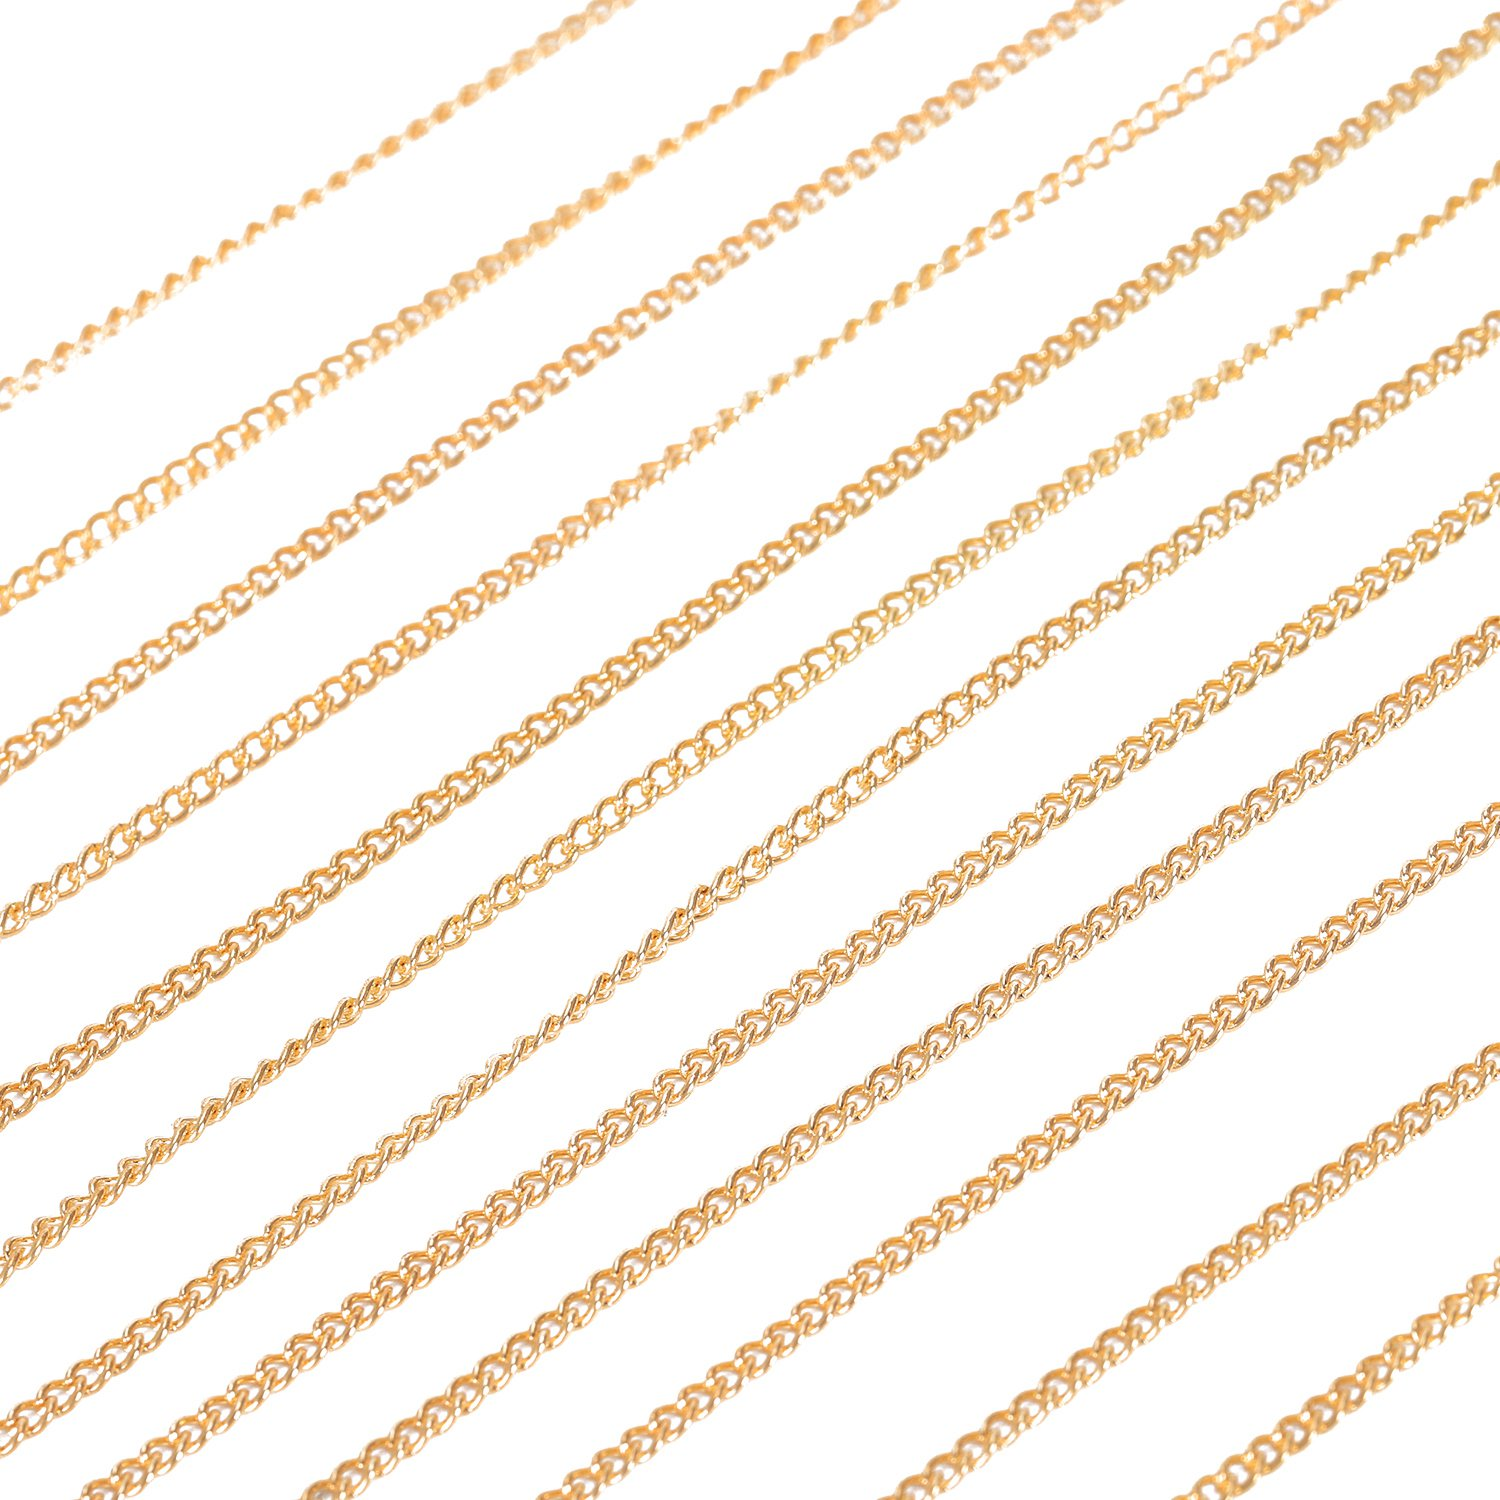 10m-silver-plate-chain-for-jewelry-creation-3-x-2-mm-10m-V9J9 thumbnail 15